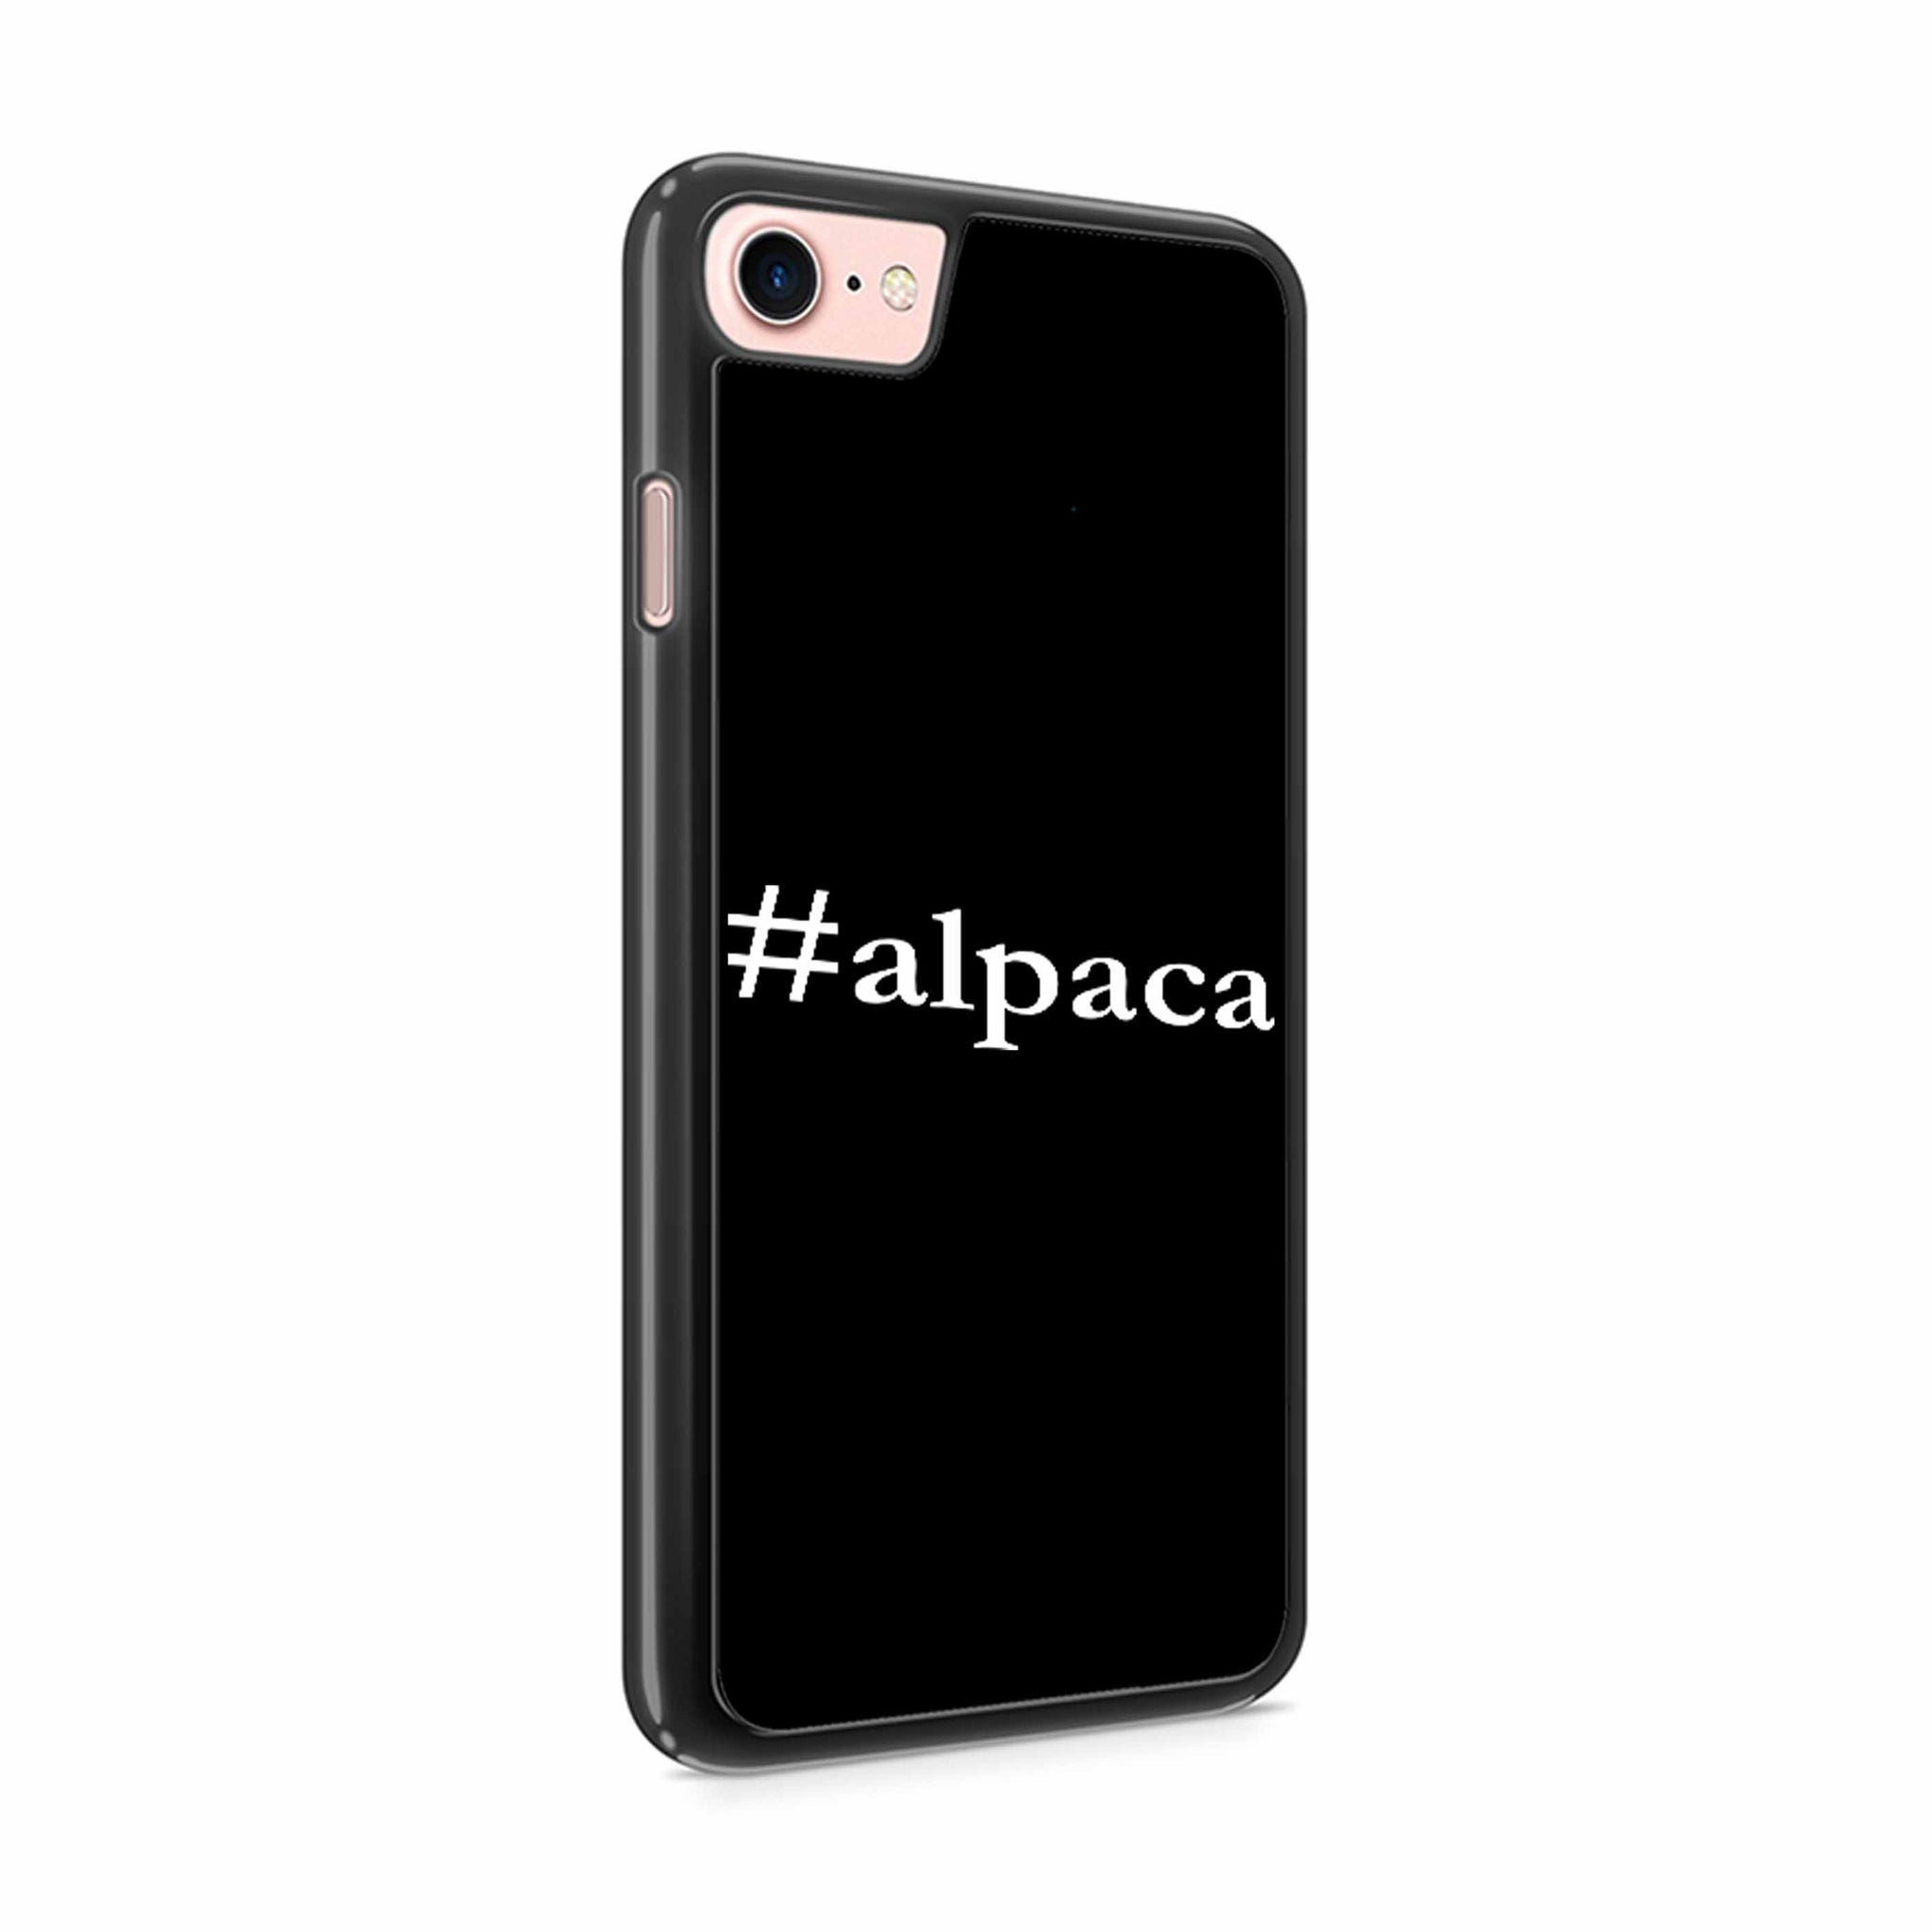 Alpaca Hashtag iPhone 8 / 8 Plus Case